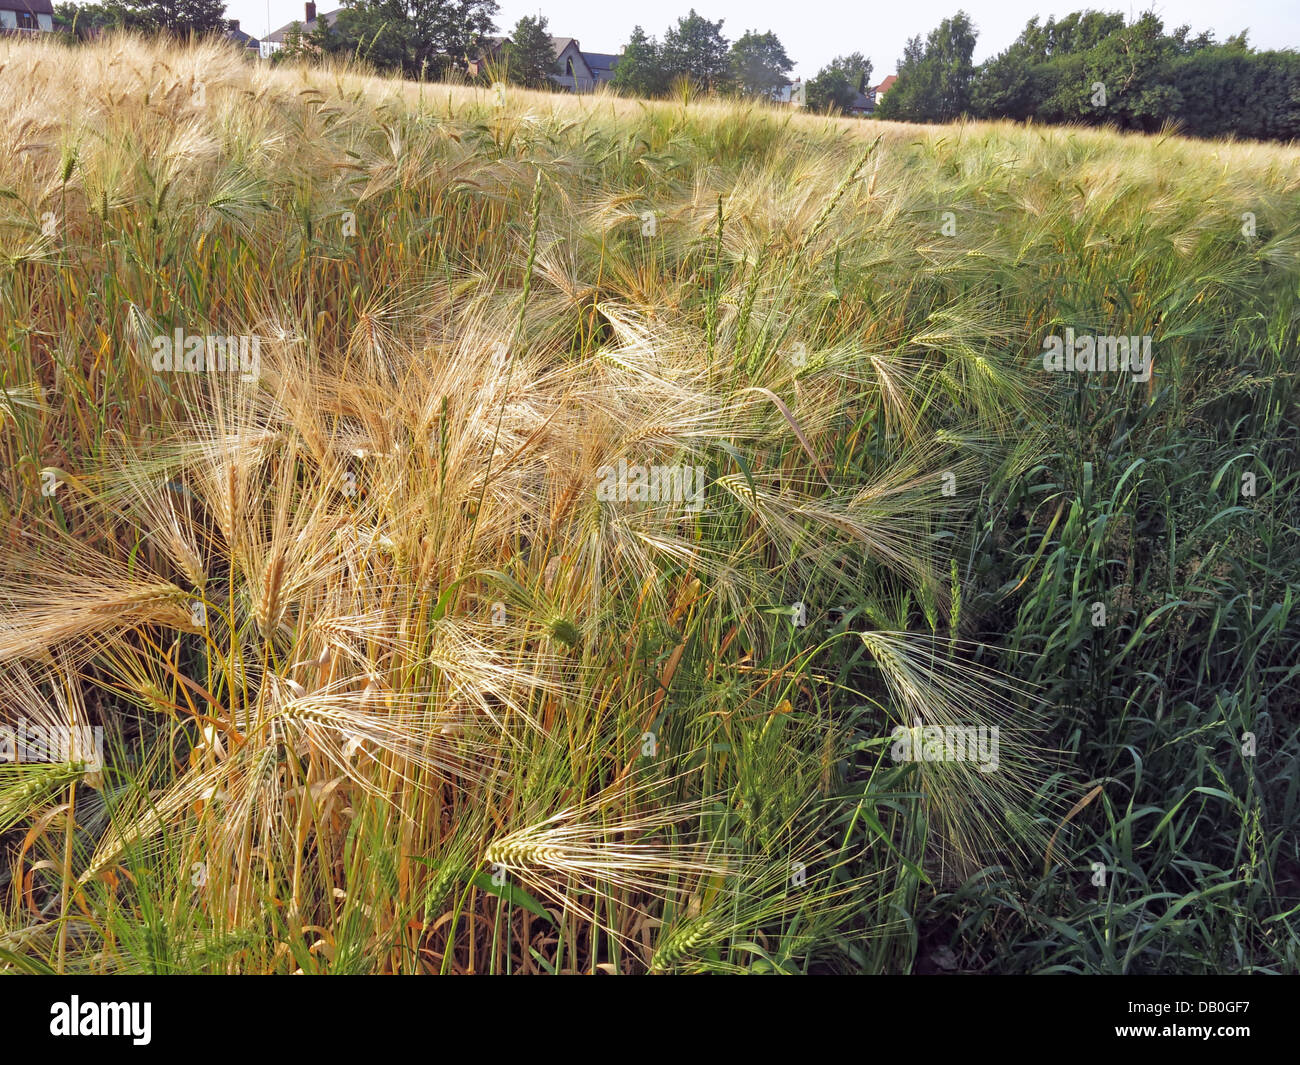 Field of wheat ready for harvest in Grappenhall, Cheshire, NW England, UK - Stock Image